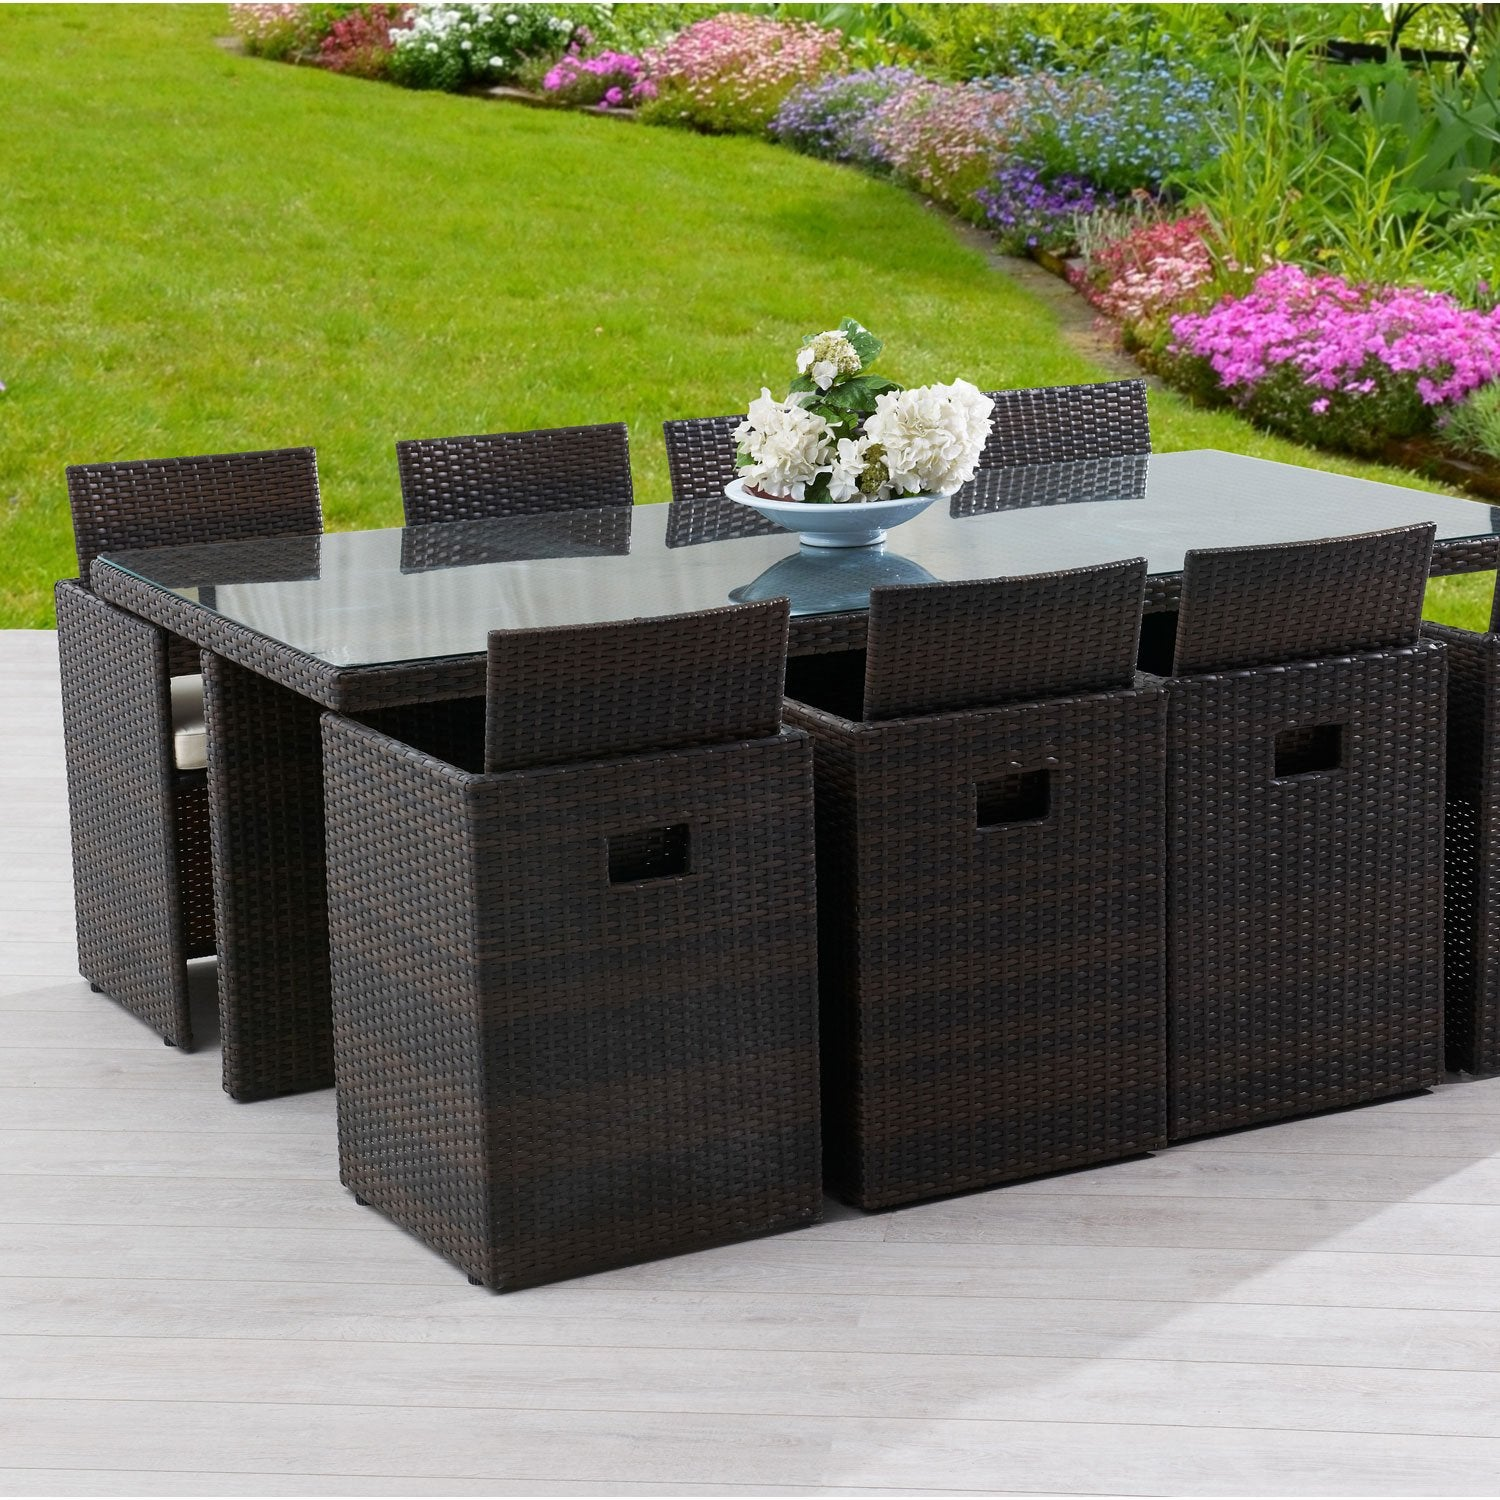 Salon de jardin encastrable r sine tress e marron 1 table for Salon jardin en resine tressee pas cher